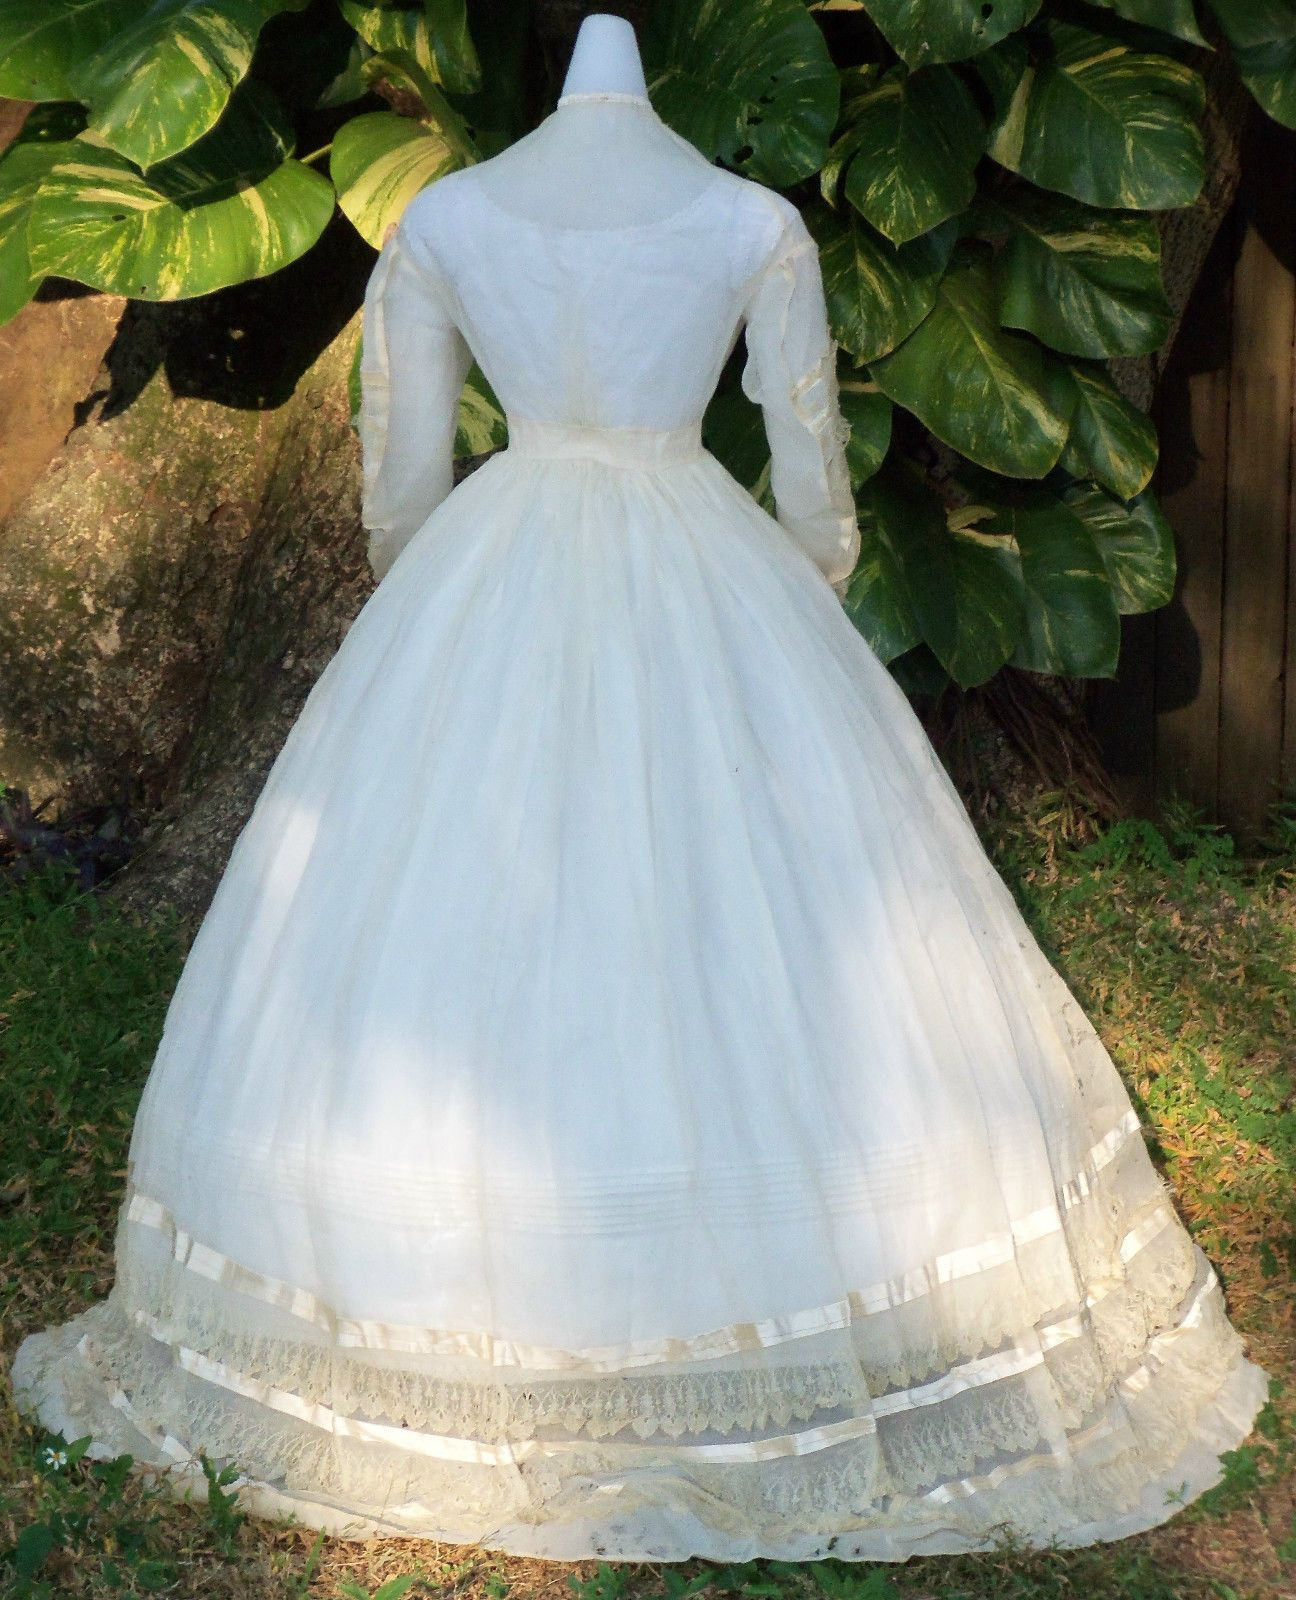 Original Civil War Era Wedding Dress for Study | eBay | 1850s ...